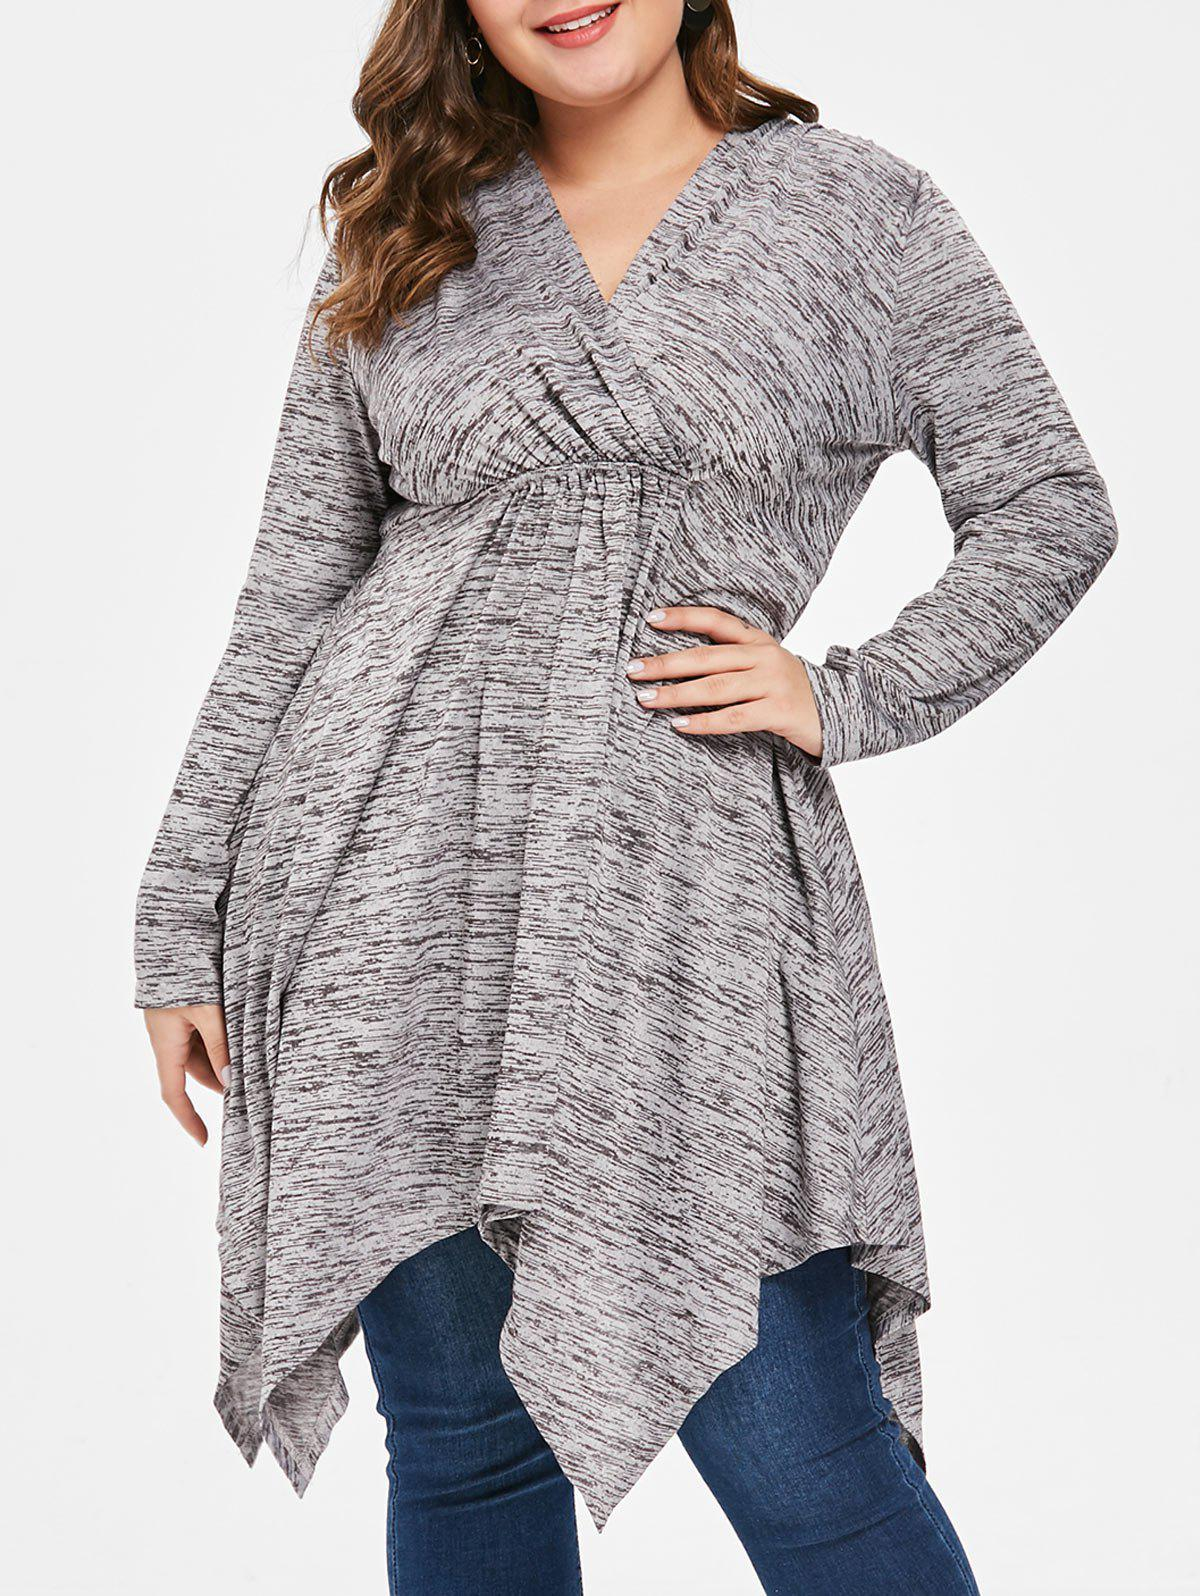 Plus Size Space Dyed Handkerchief T-shirt - GRAY 1X